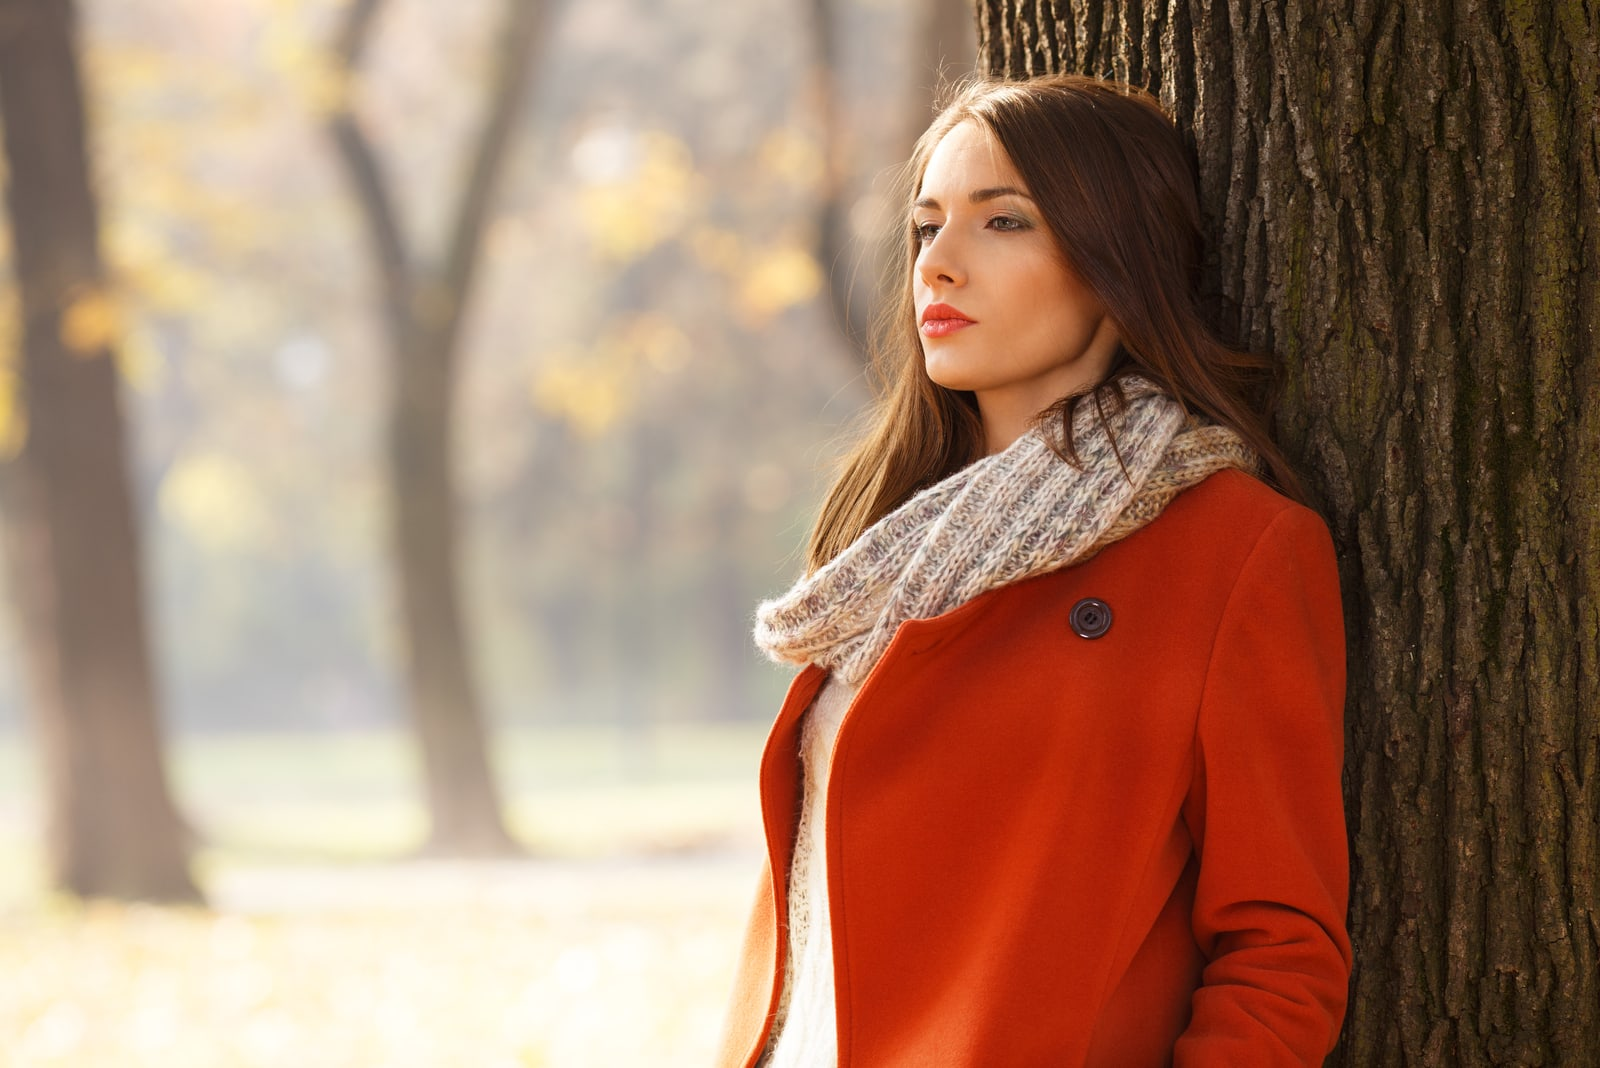 sad woman wearing red coat in the woods